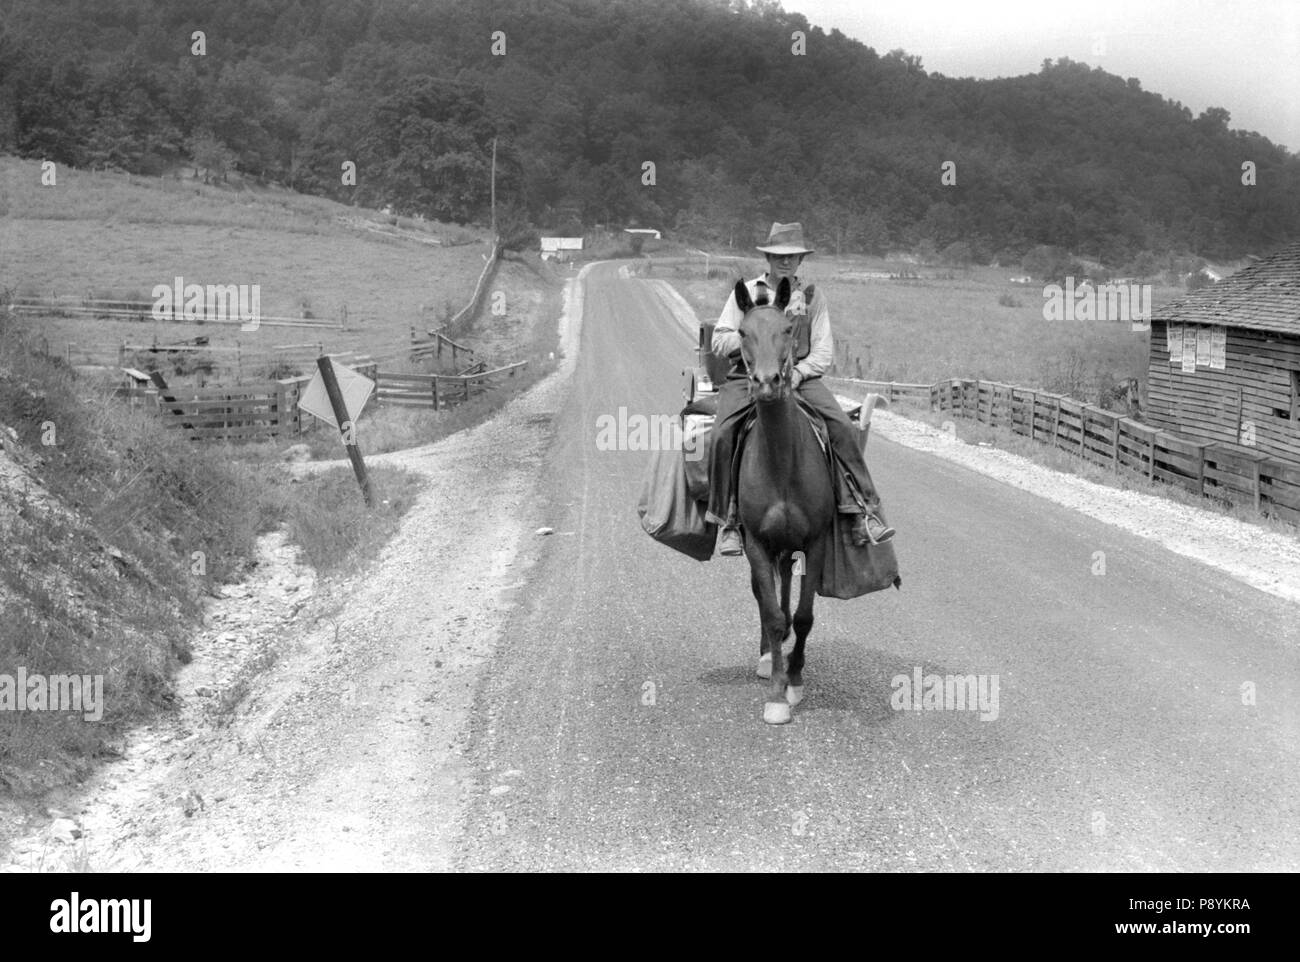 Rural Postman Delivering Mail on Horse, Jackson, Kentucky, USA, Marion Post Wolcott, Farm Security Administration, July 1940 - Stock Image